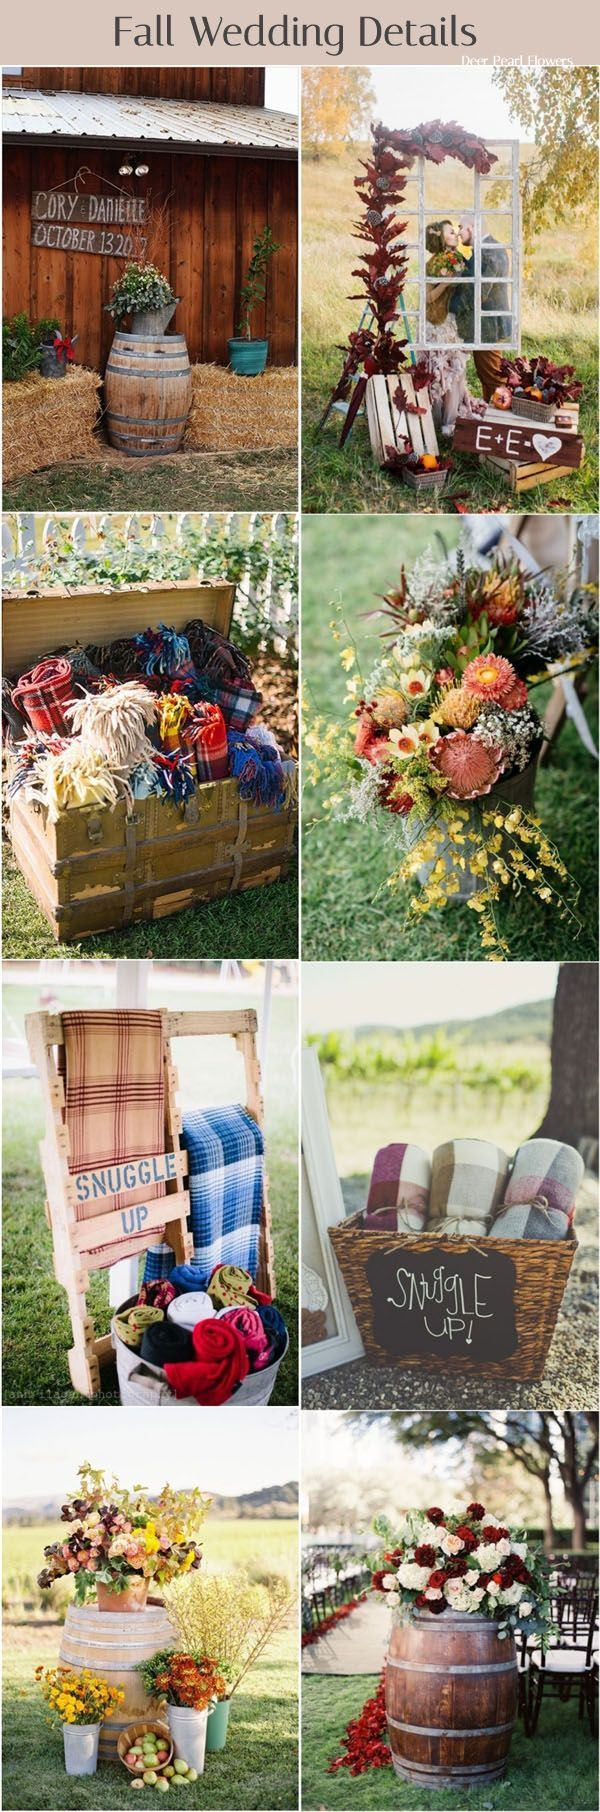 Wedding decorations pics october 2018  of the Best Fall Wedding Ideas for   Weddings  Pinterest